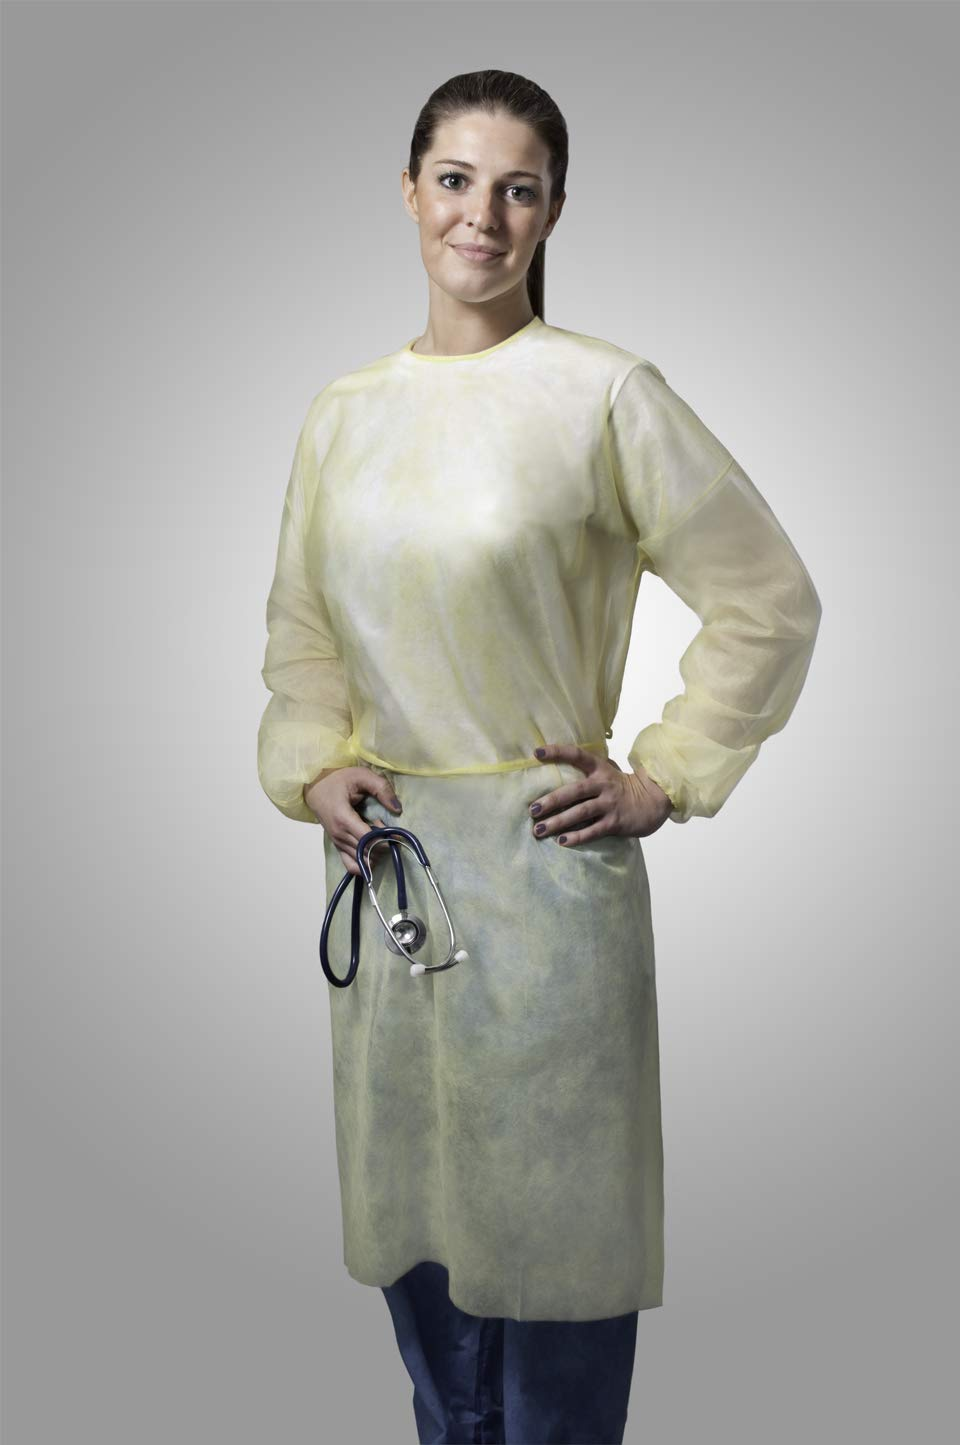 Tronex Fluid-Resistant Spunbond Isolation Gowns with Elastic Cuffs, X-Large, Soft Yellow (50) by TRONEX (Image #1)